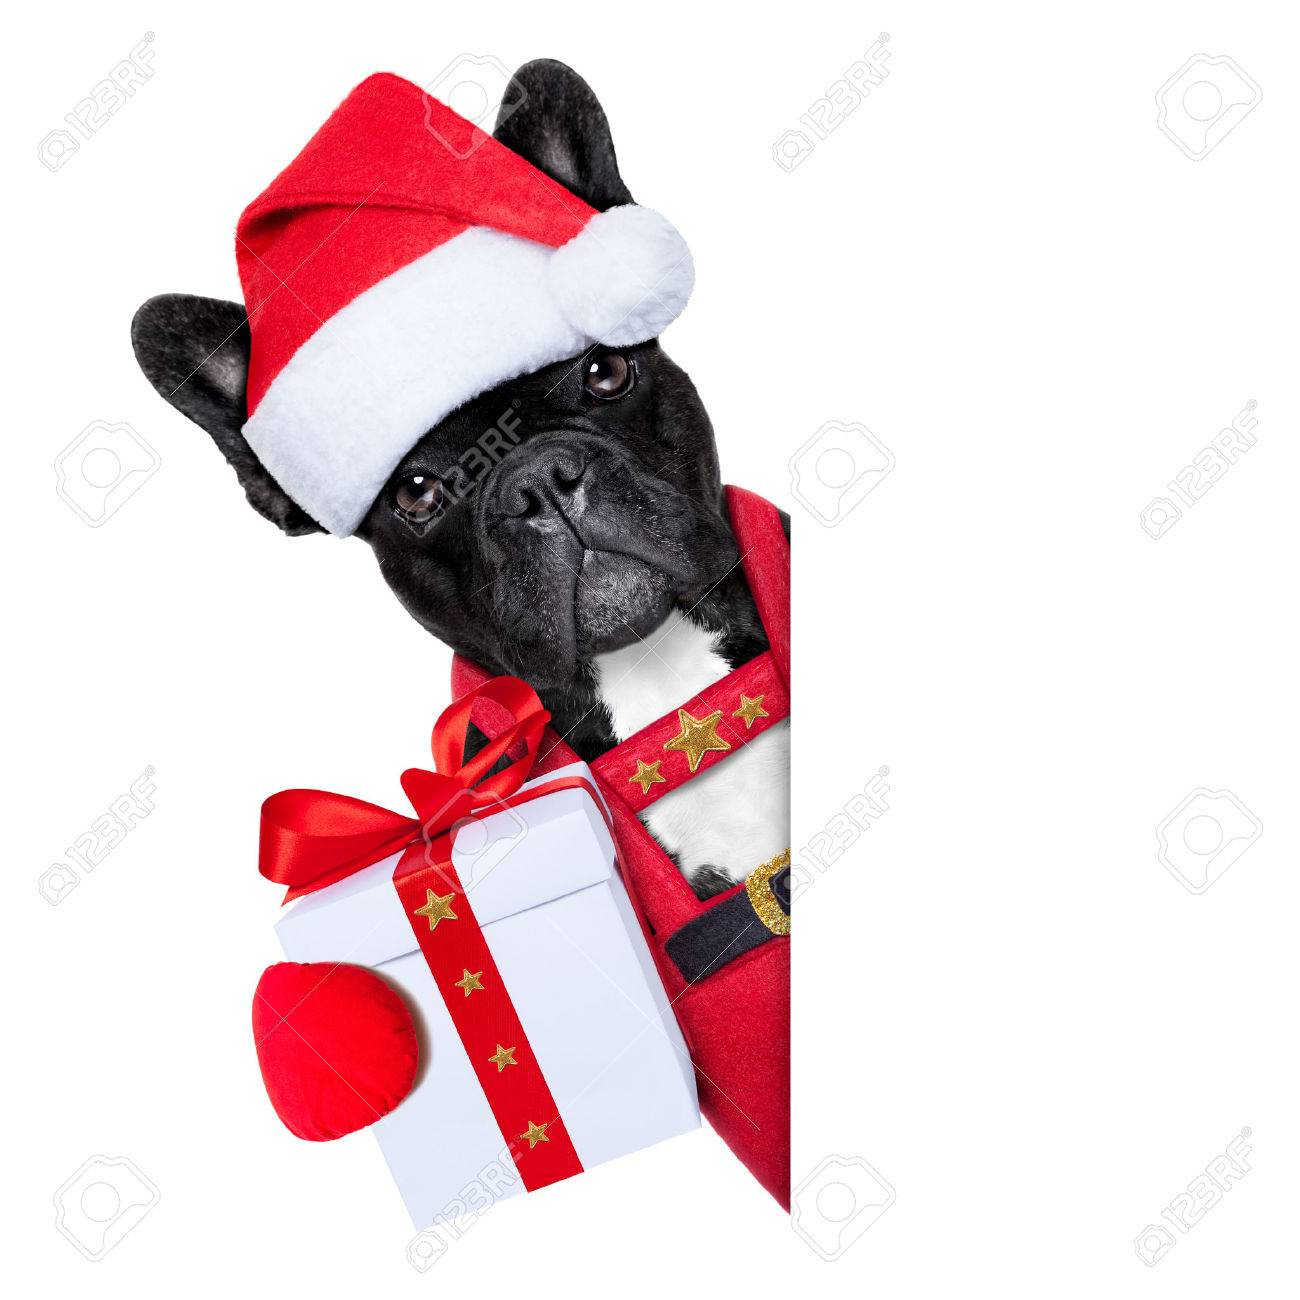 Santa claus christmas dog wearing a hat with a xmas gift or present for you , besides a white or blank placard, isolated on white background - 32645061